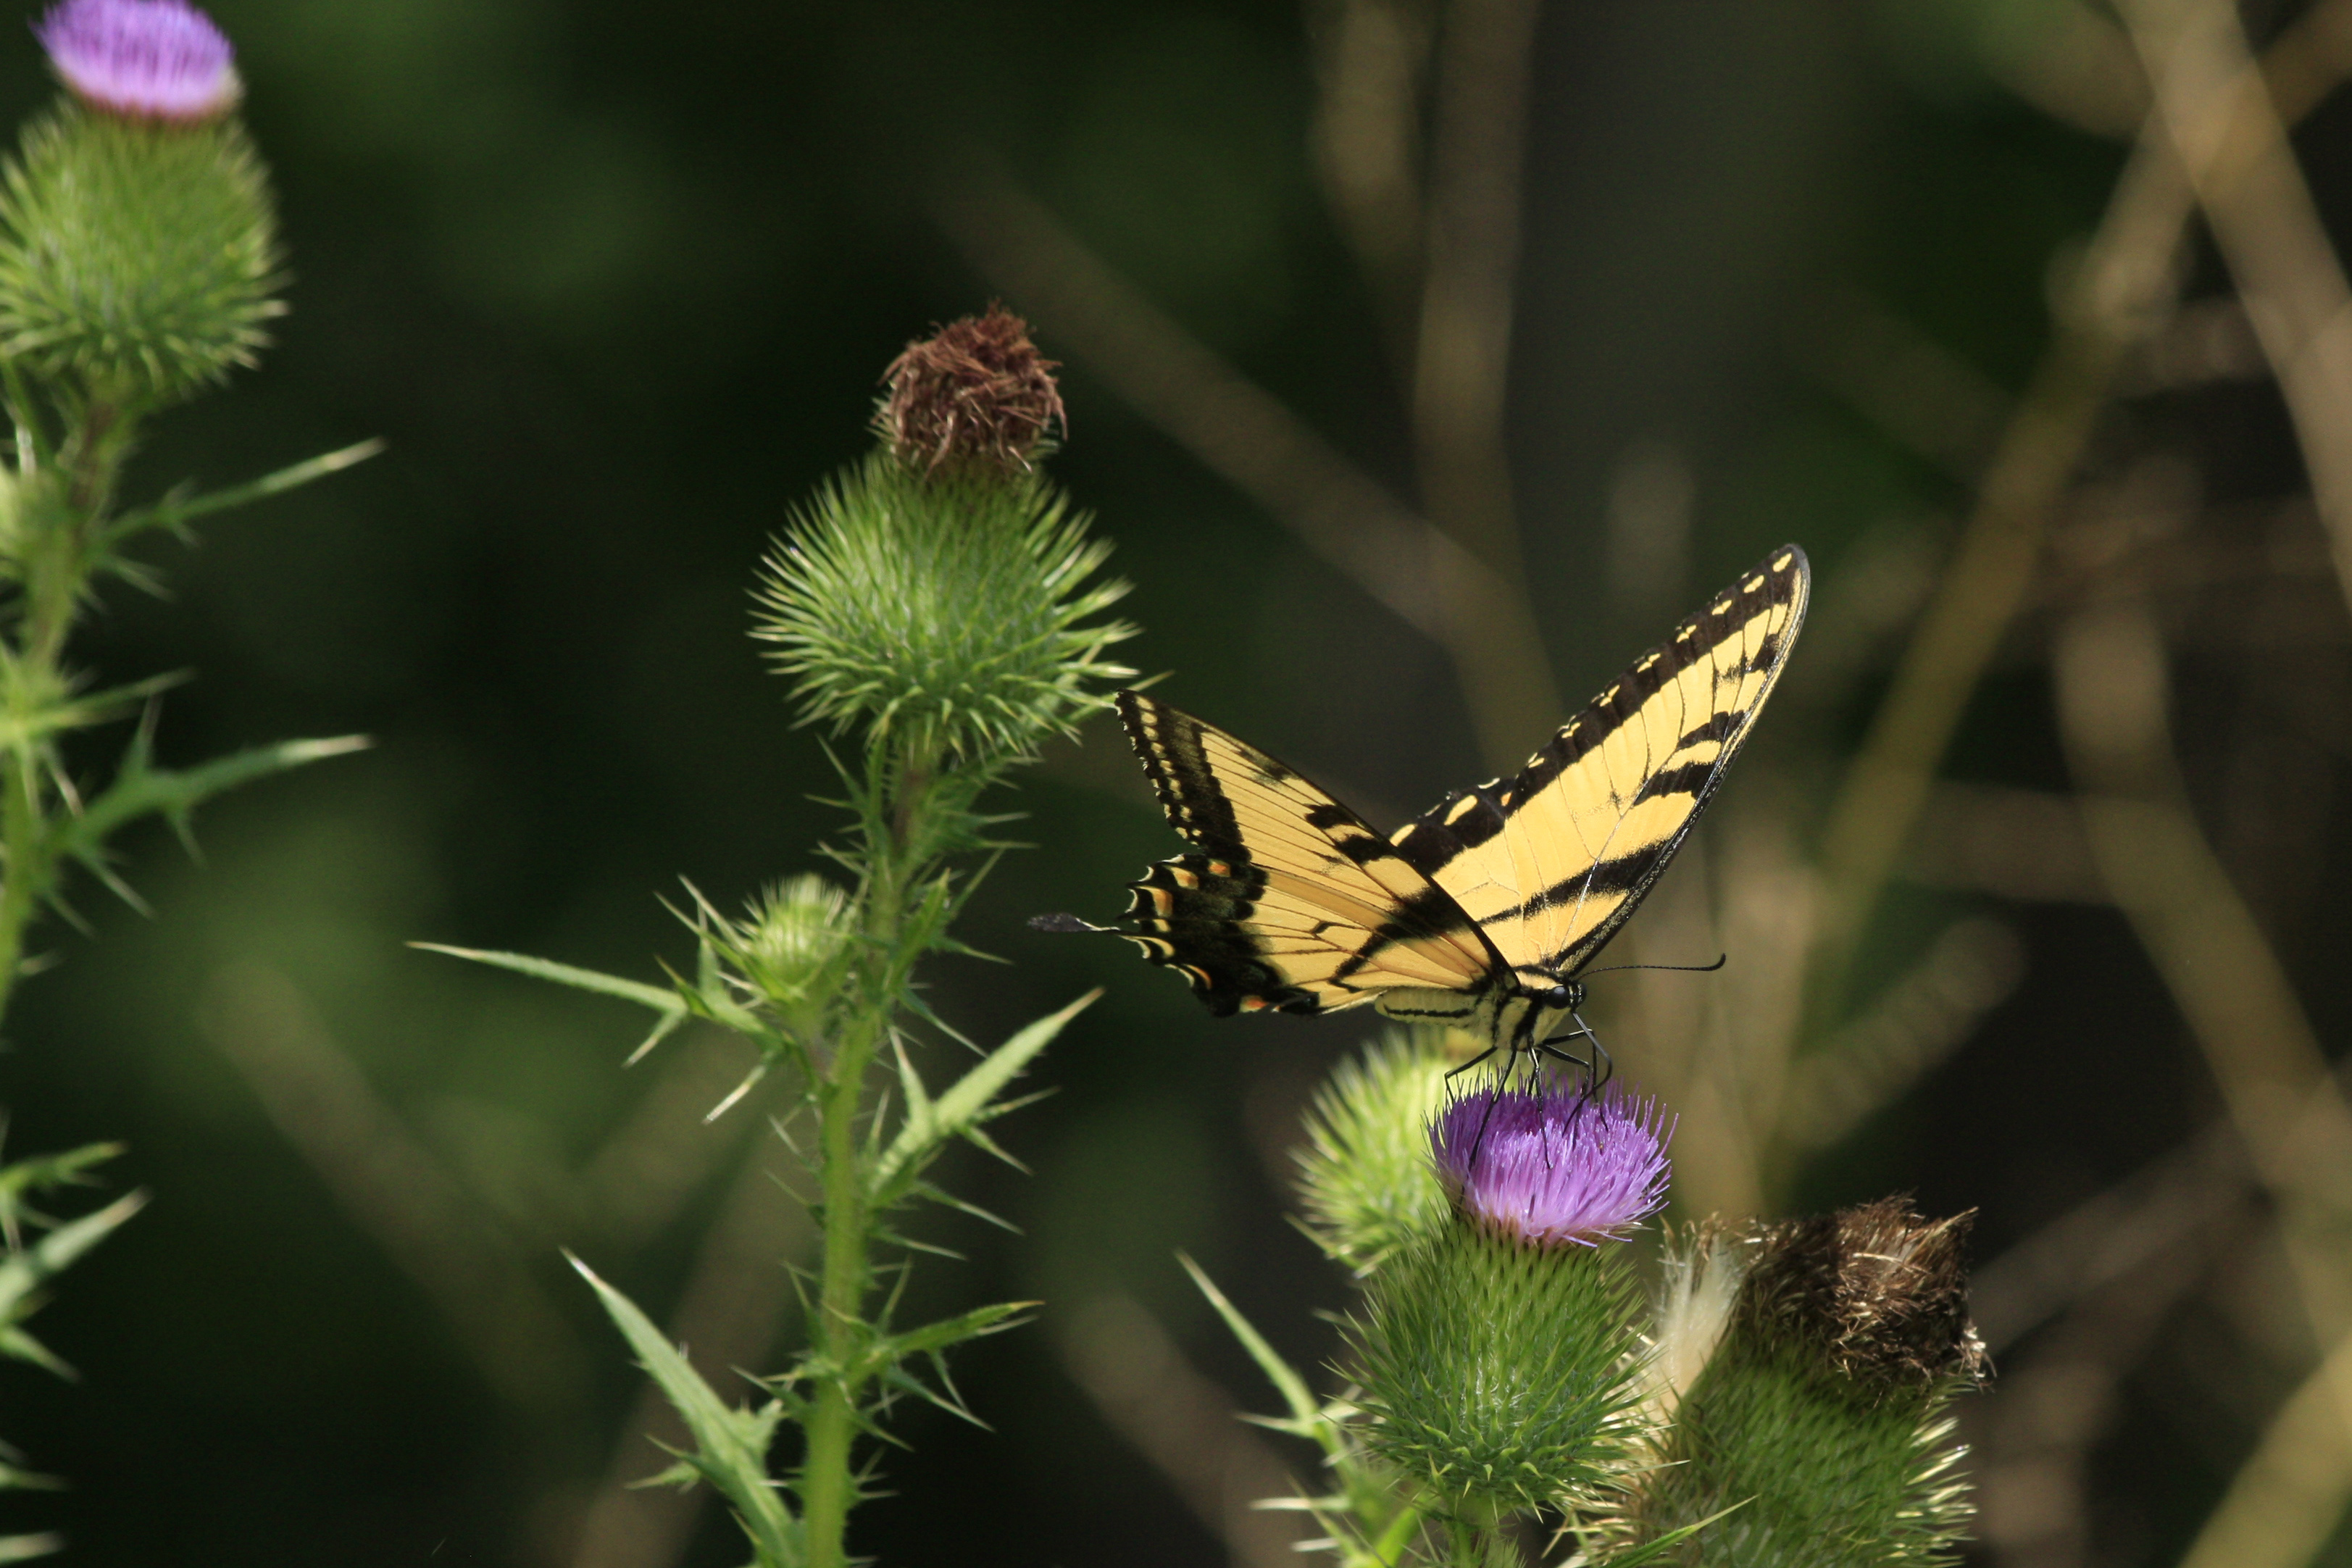 (1/2) A swallowtail butterfly alights on thistle. Photo: Leticia Shaddix, wildlife, animal, nature, insect, butterfly, plant, flower, thistle